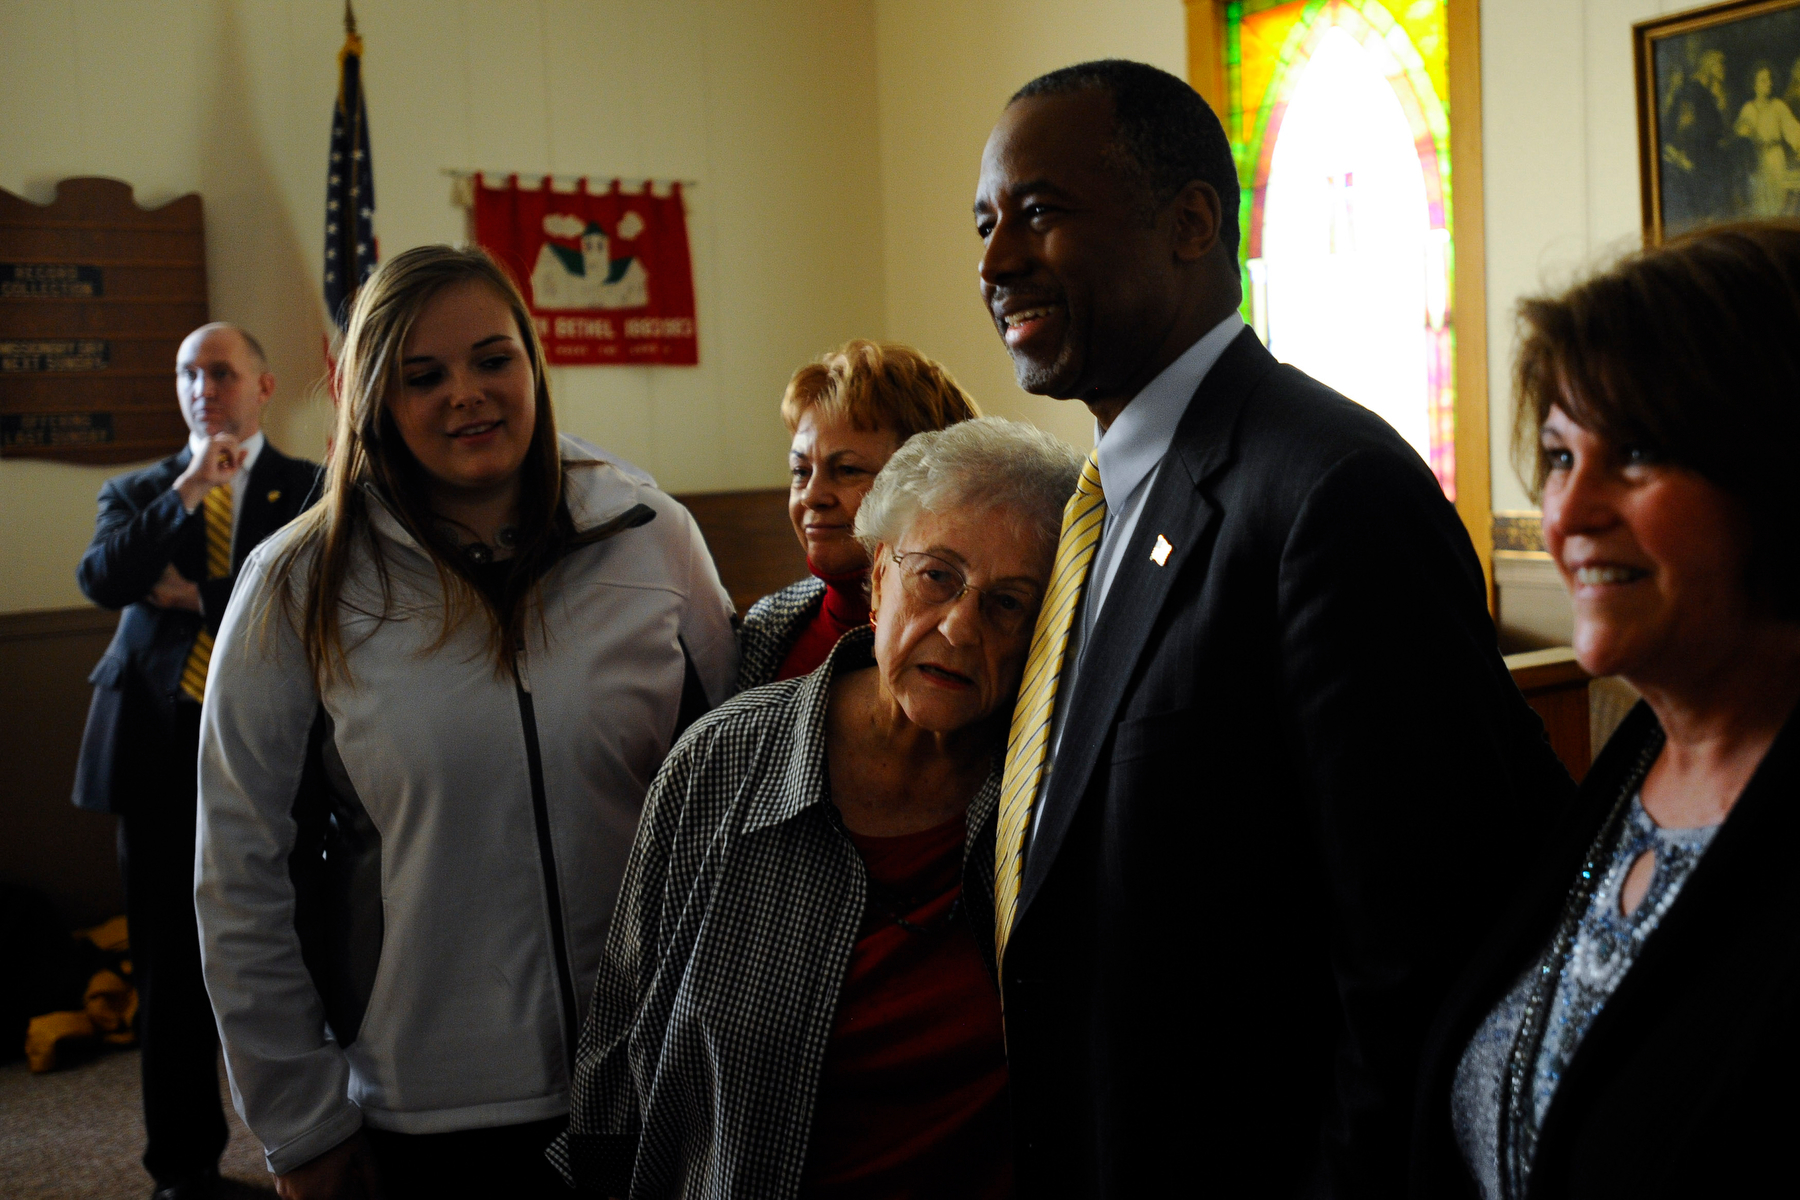 Laurale Hunter lays her head on the chest of U.S. Republican presidential candidate Ben Carson at South Bethel Church in Tipton, Iowa November 22, 2015. REUTERS/Mark Kauzlarich